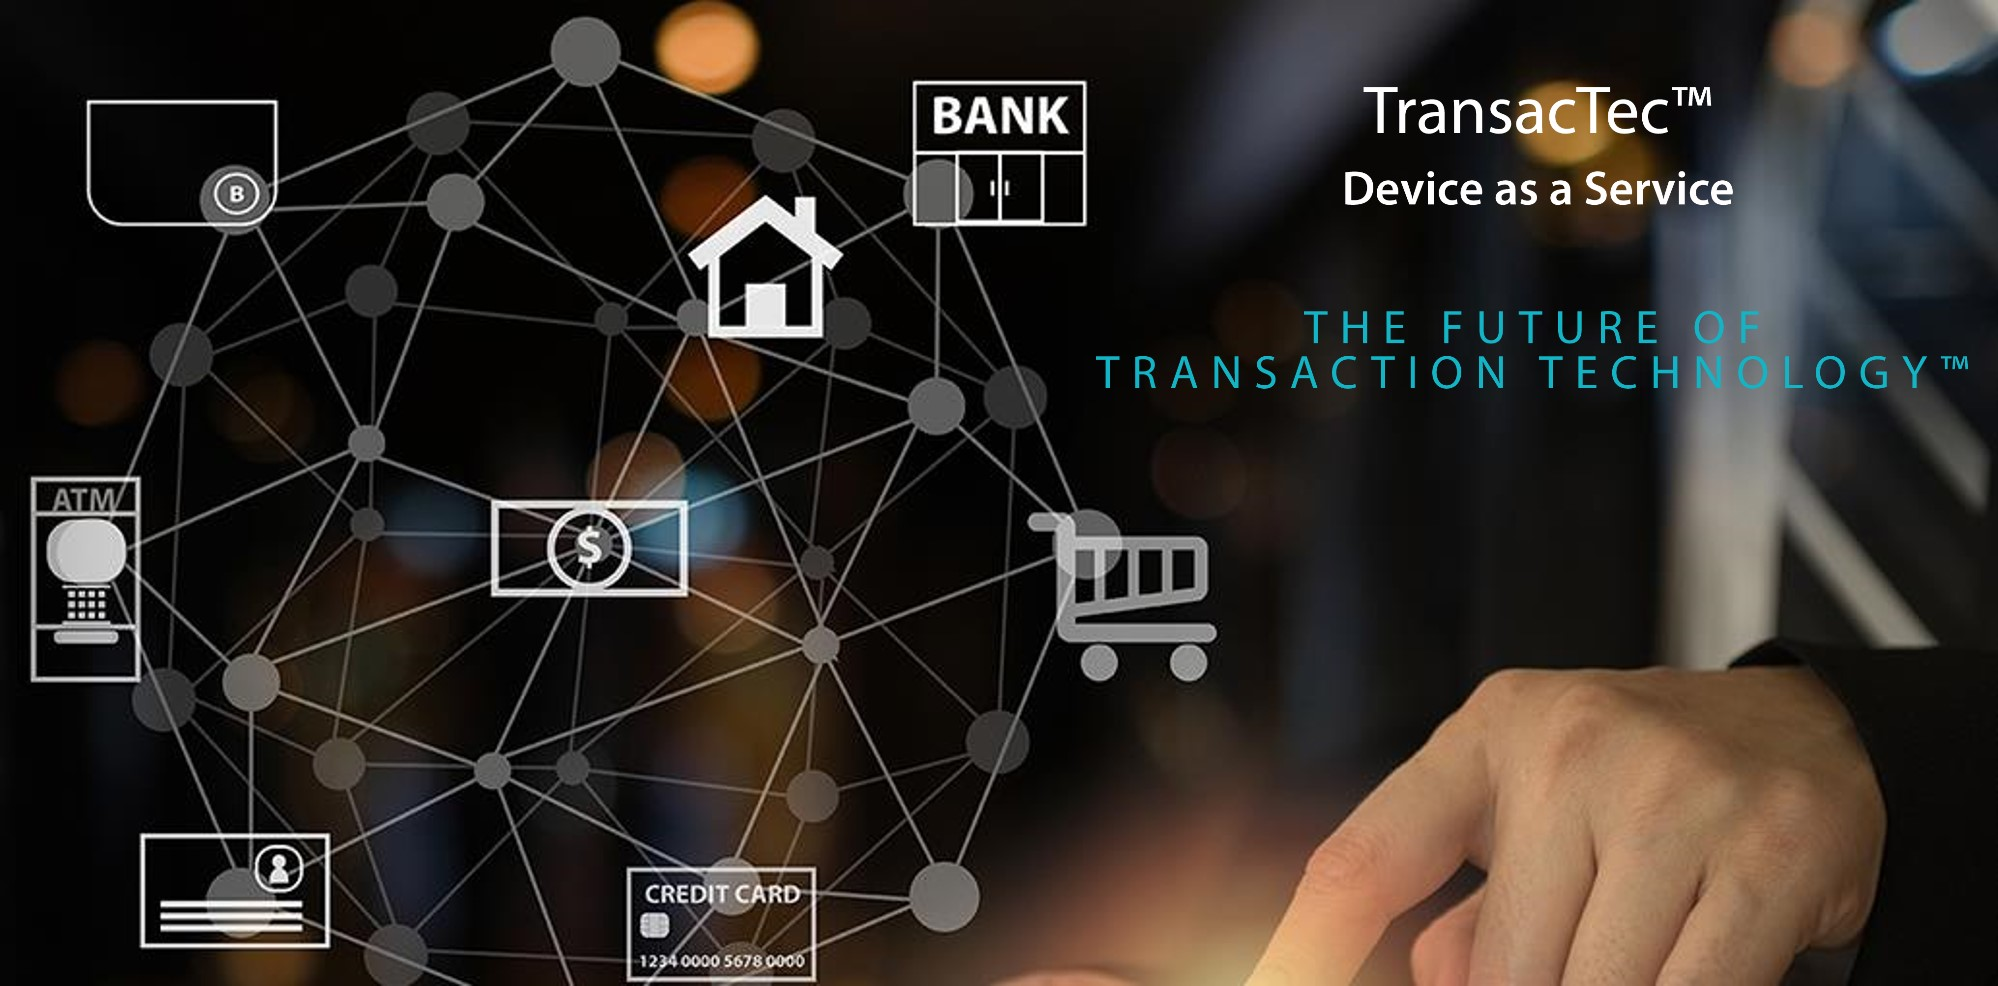 Burroughs Introduces TransacTec™ Device as a Service – The Future of Transaction Technology